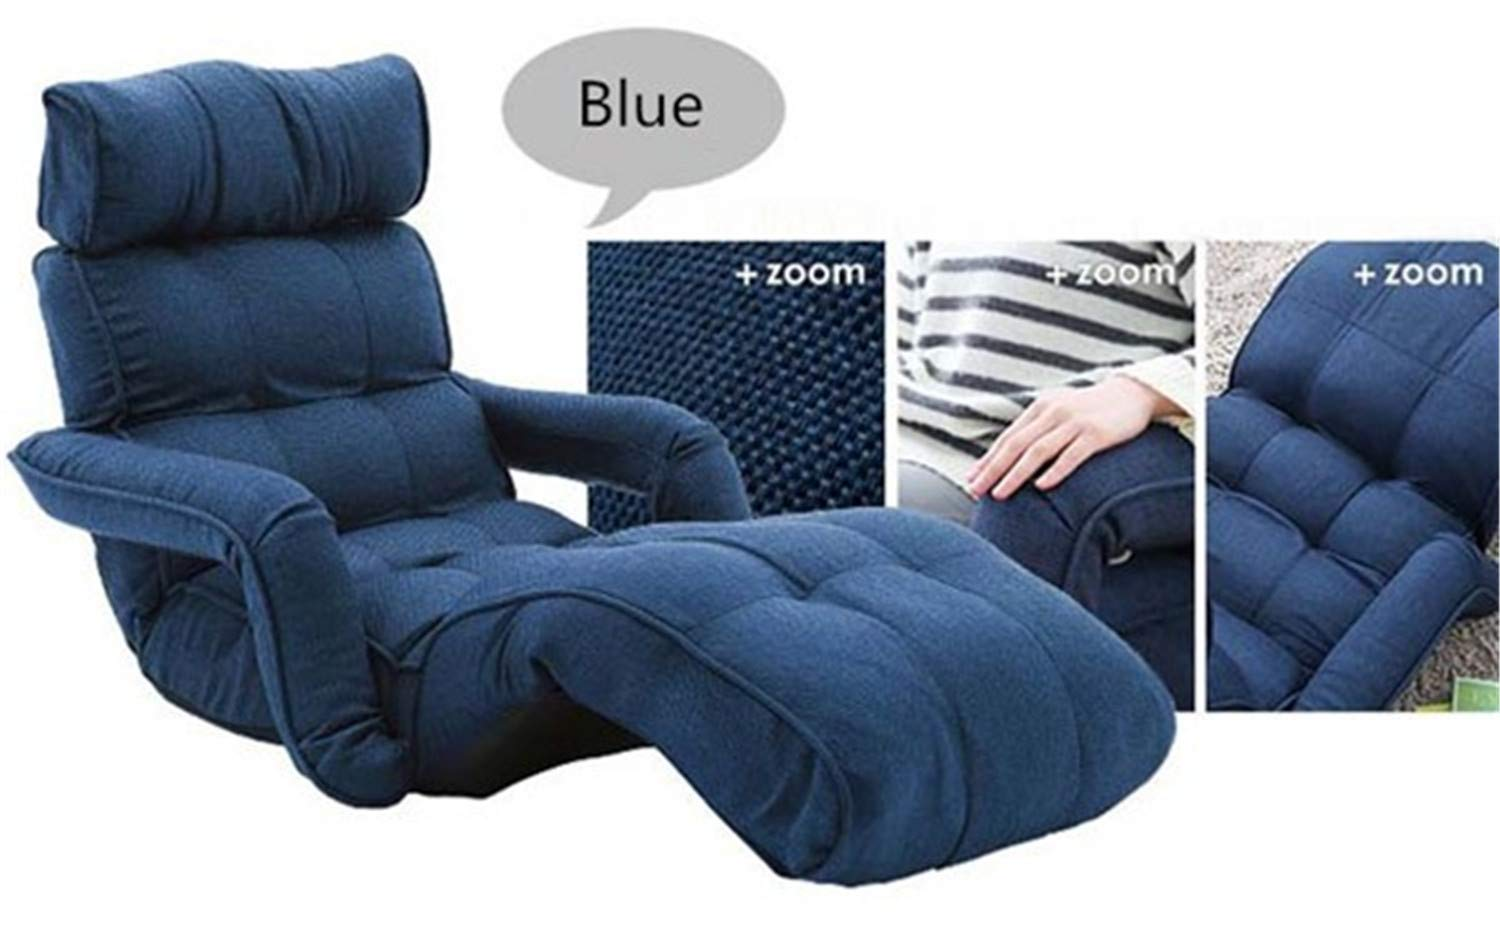 ZZSF Modern Folding Chaise Lounge Lazy Sofa Japanese Style Foldable Single Sofa Bed 6 Colors Living Room Furniture Lounge Chair Daybed Blue by ZZSF